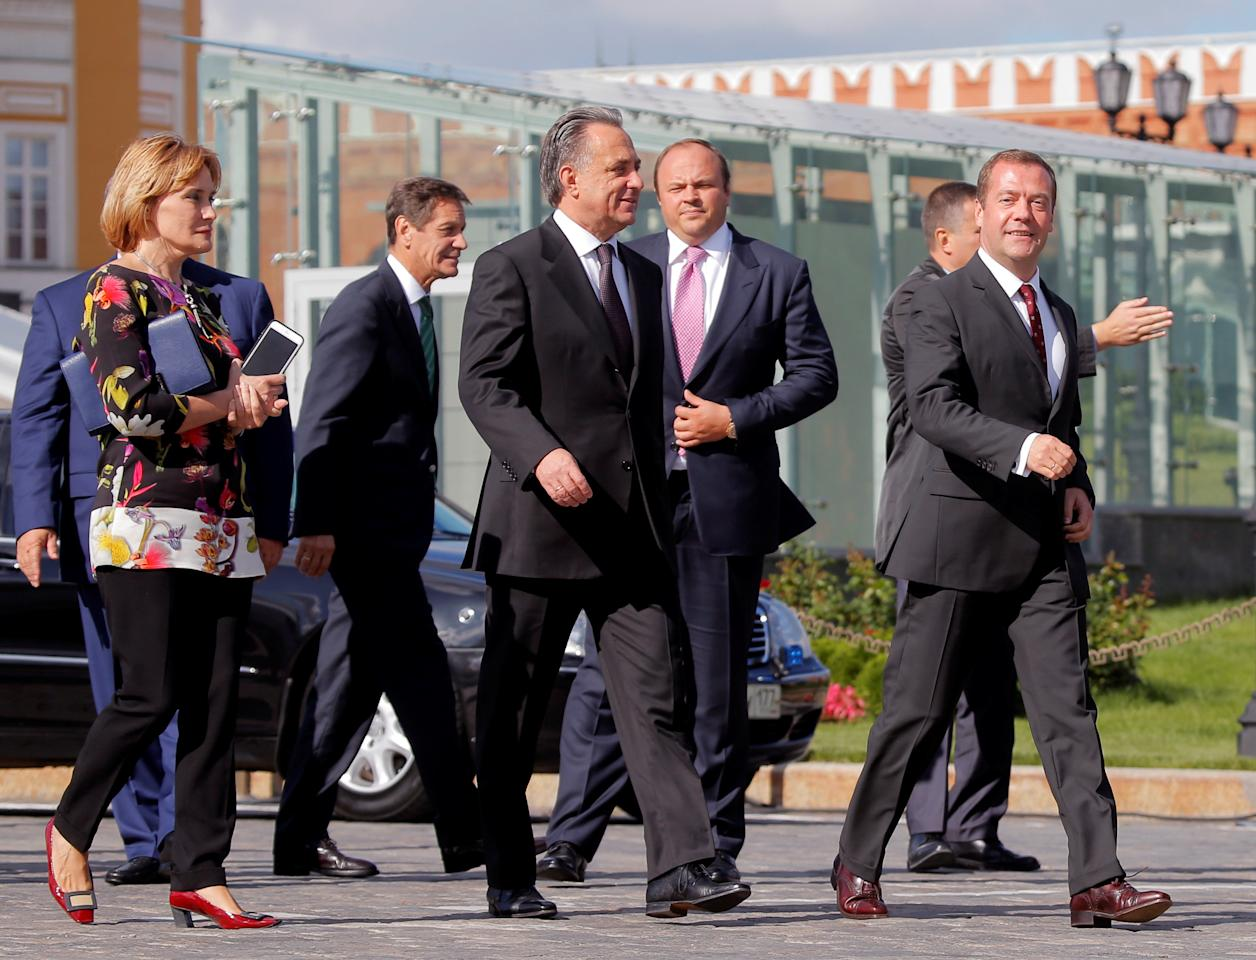 Russian Prime Minister Dmitry Medvedev (R), Sports Minister Vitaly Mutko (C) and Russian Olympic Committee (ROC) chief Alexander Zhukov (3rd L) take part in the awarding of new cars to Russian Olympic medallists returning home from the 2016 Rio Olympics in Moscow's Kremlin, Russia, August 25, 2016. REUTERS/Maxim Shemetov